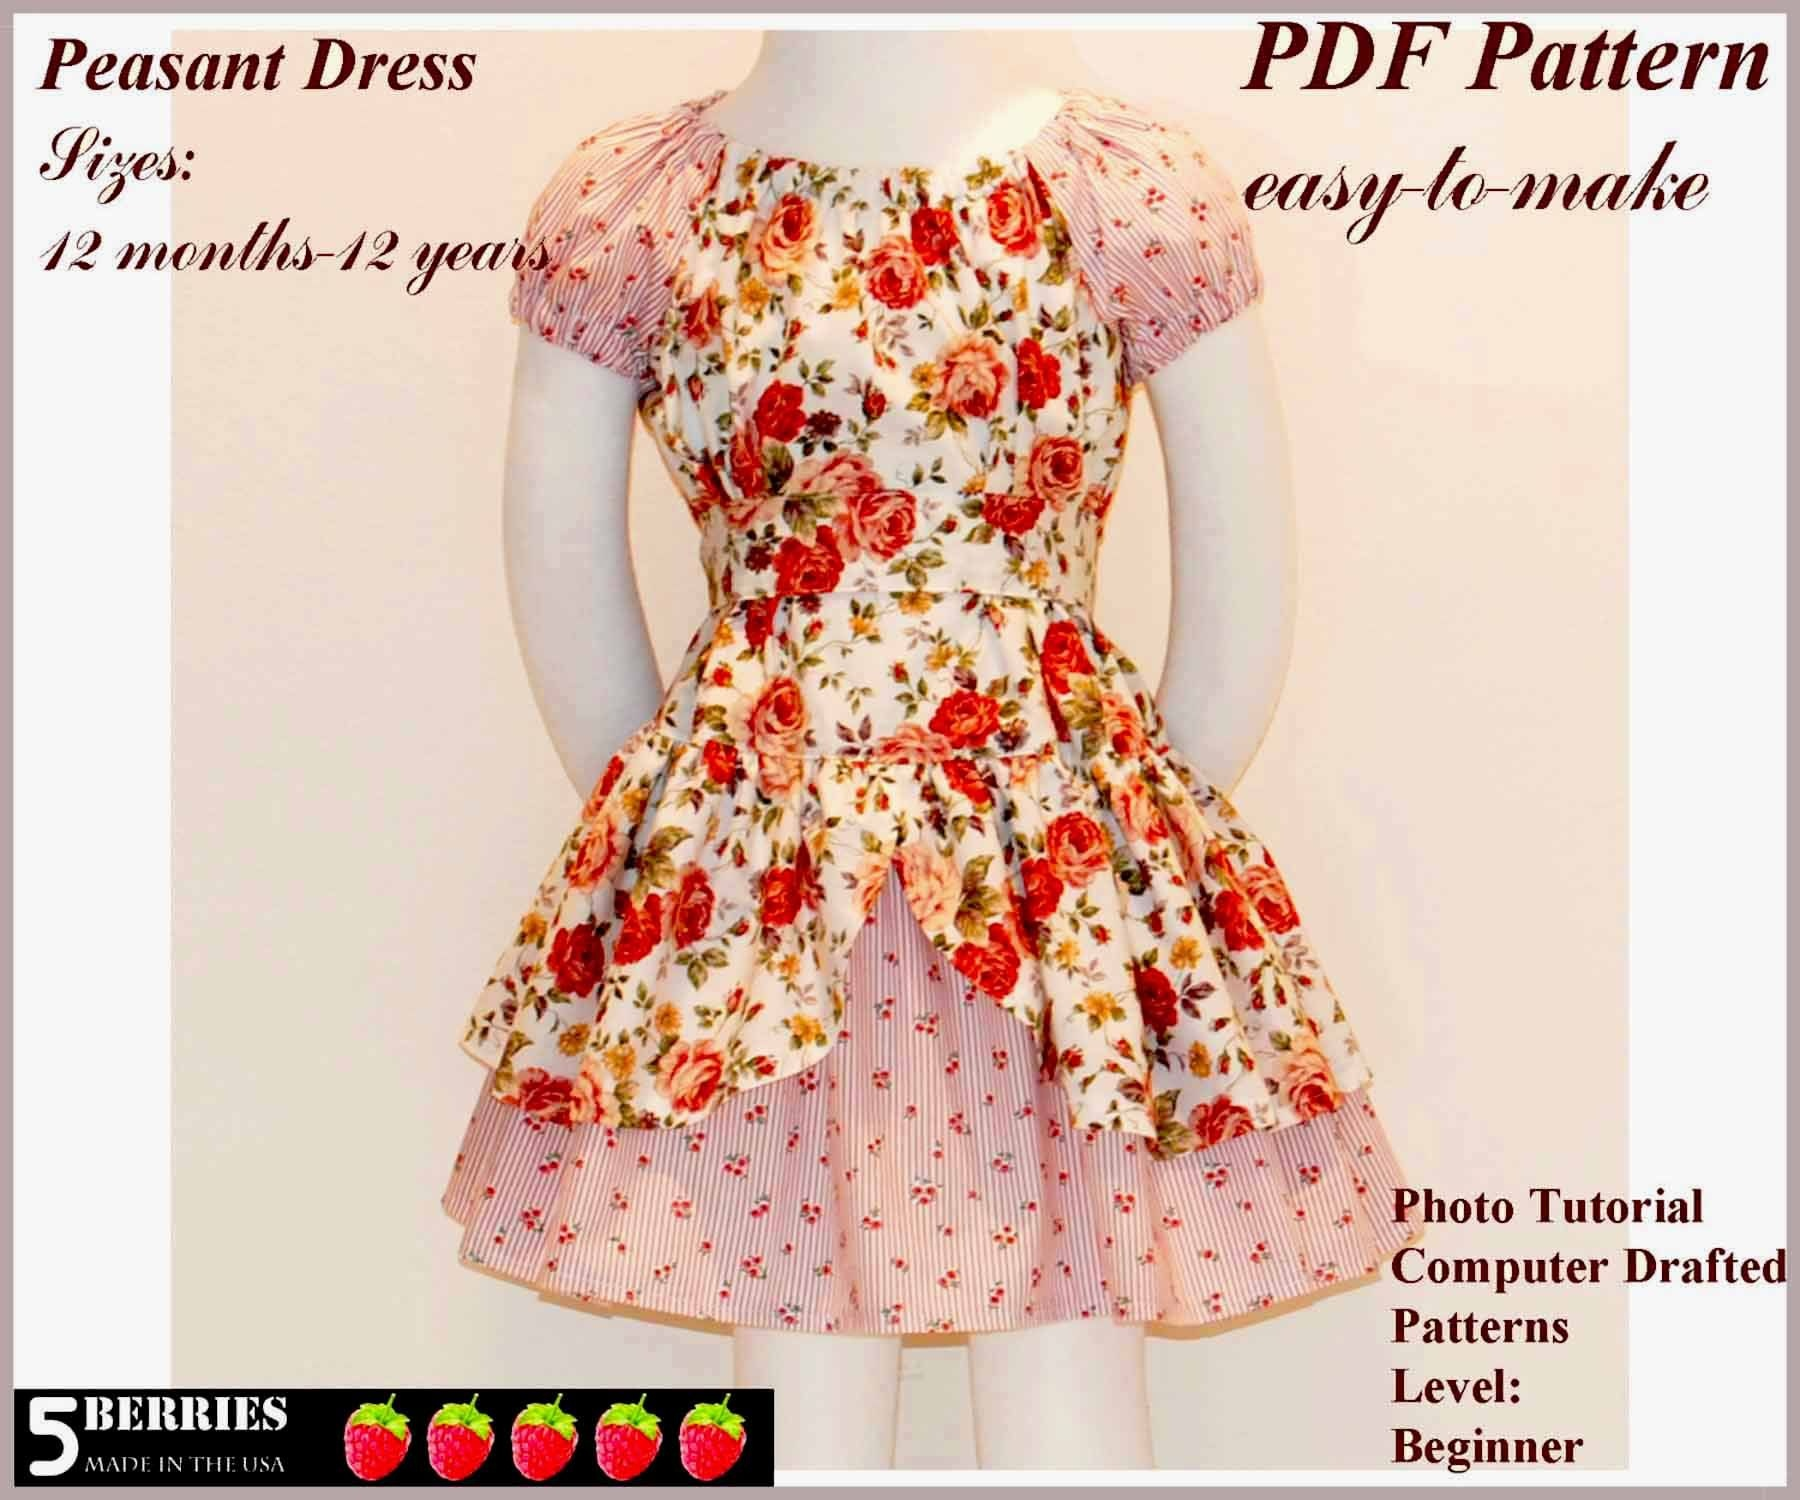 Free Printable Sewing Patterns | Alexandra Girls Dress Sewing - Free Printable Sewing Patterns For Kids